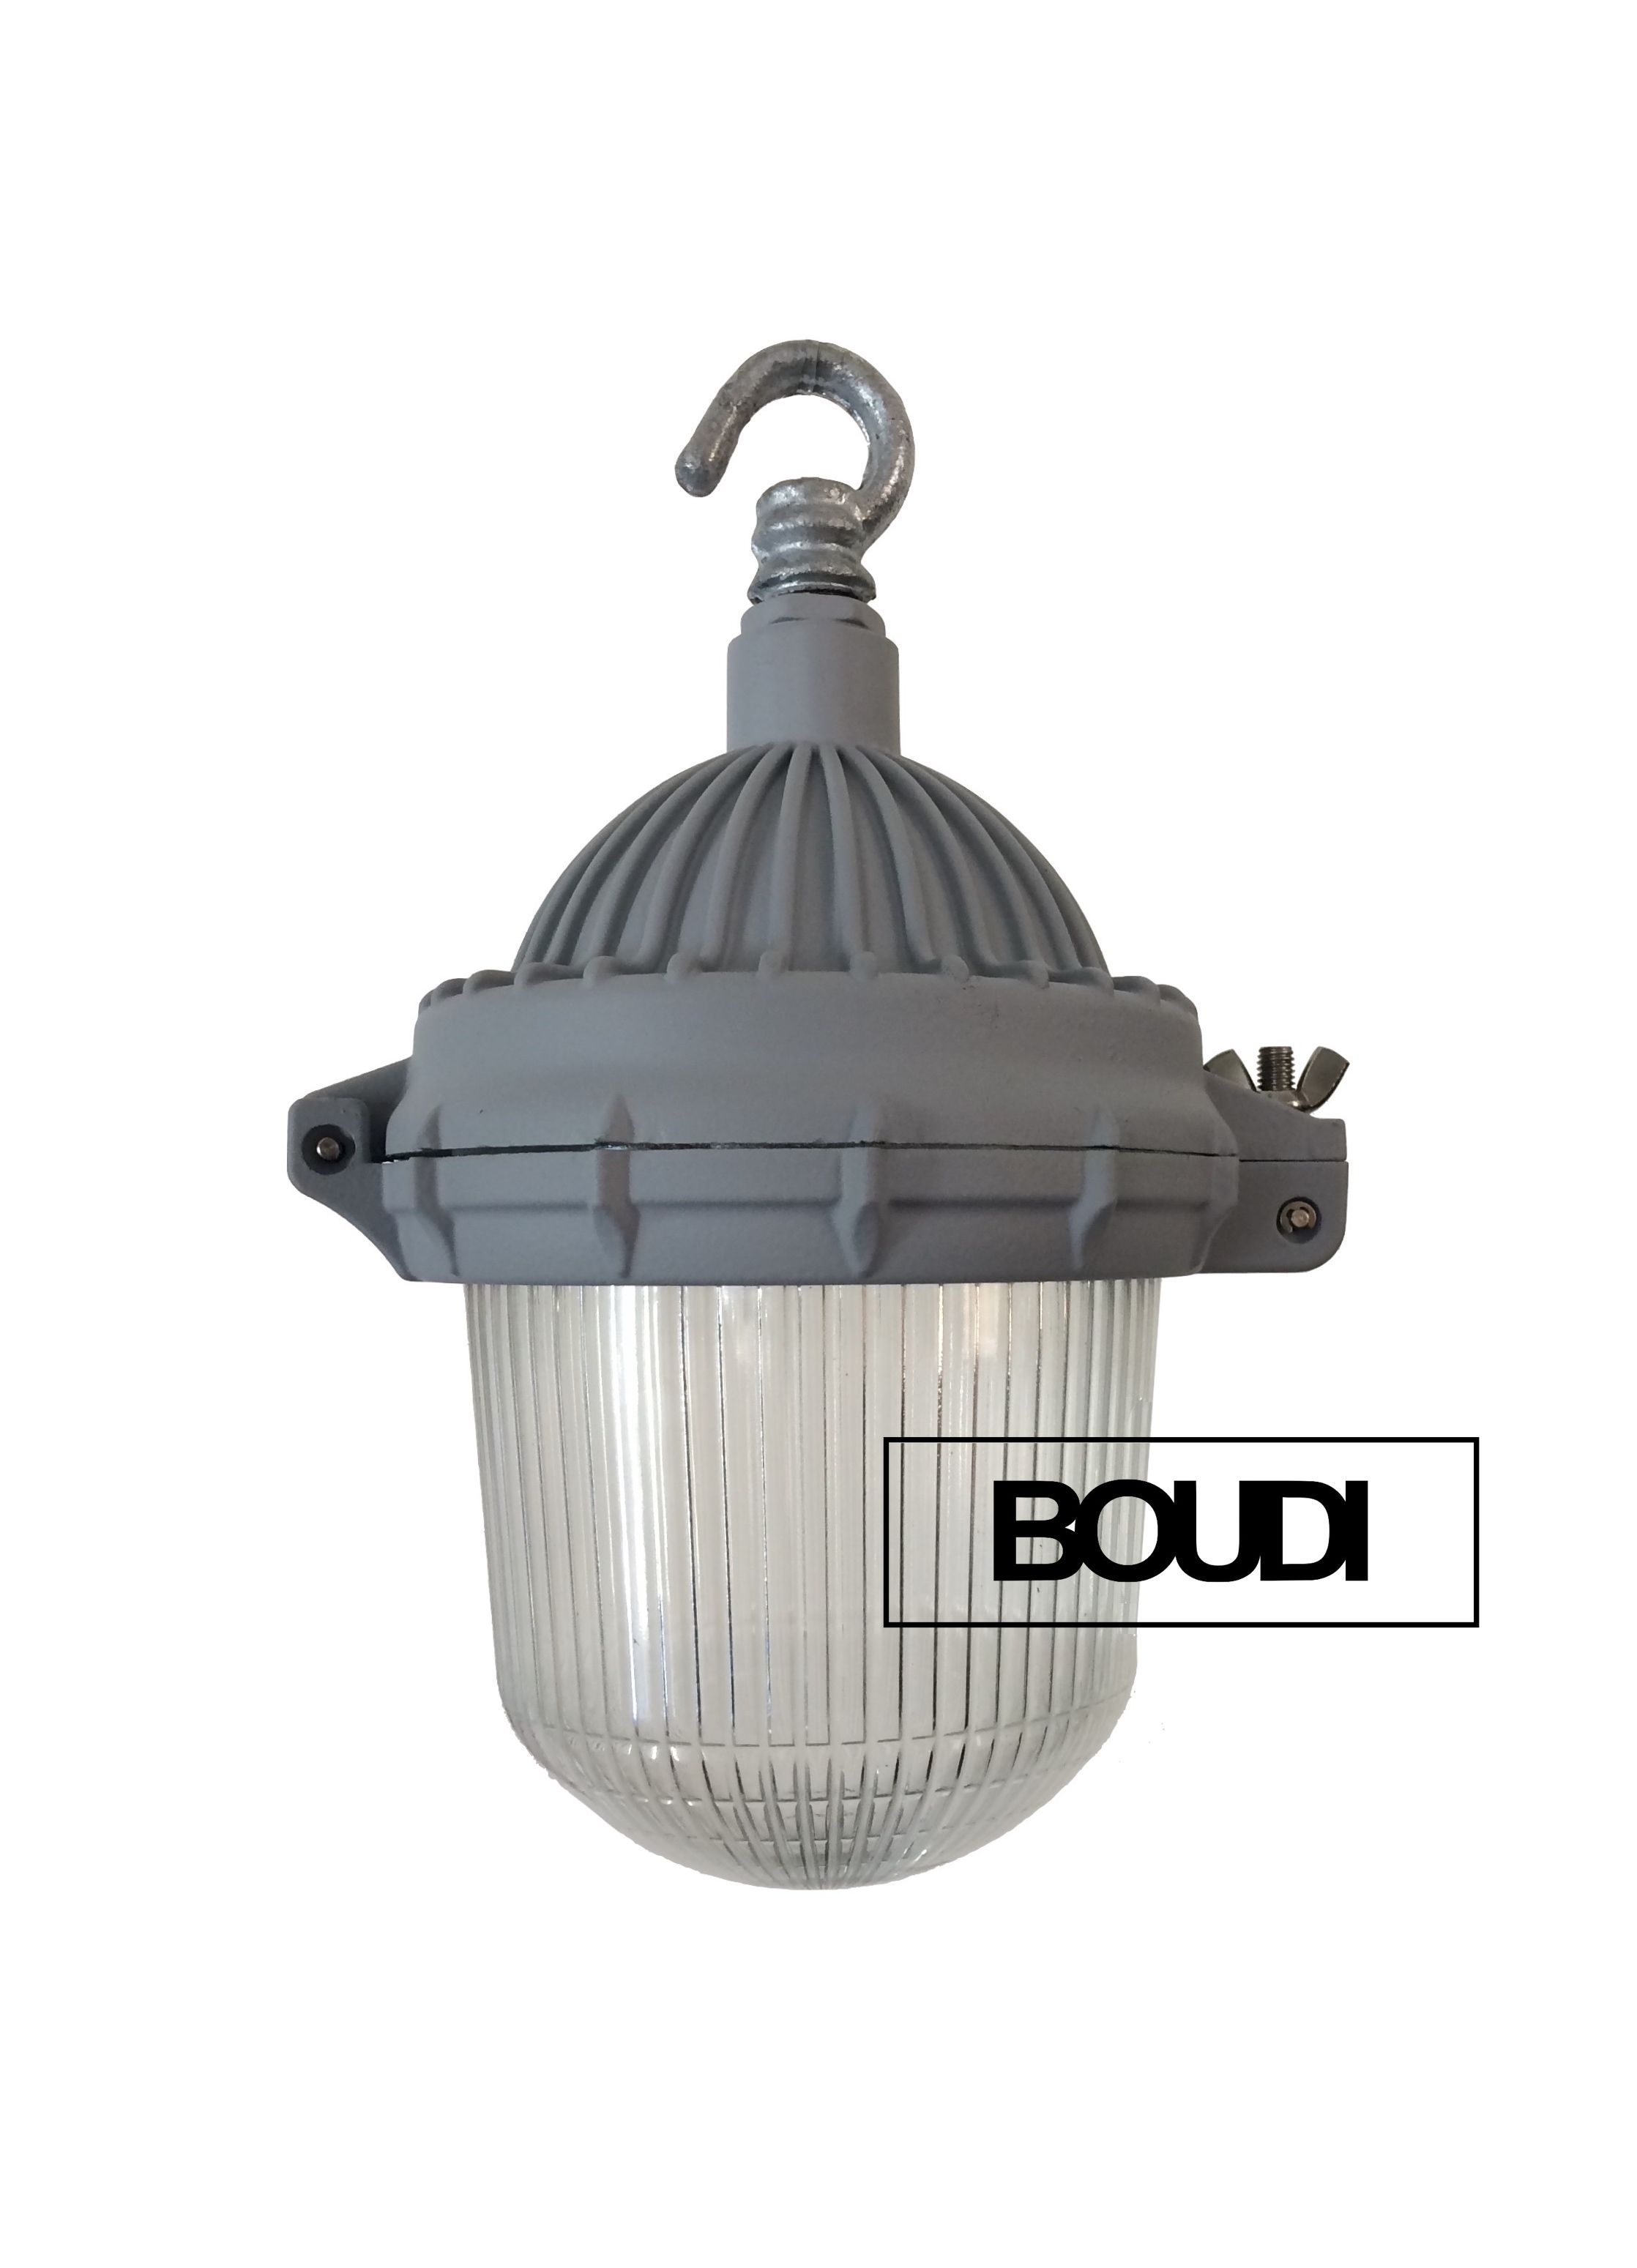 Boudi 50s lobby pendant light metal crown holophane glass www boudi co nz